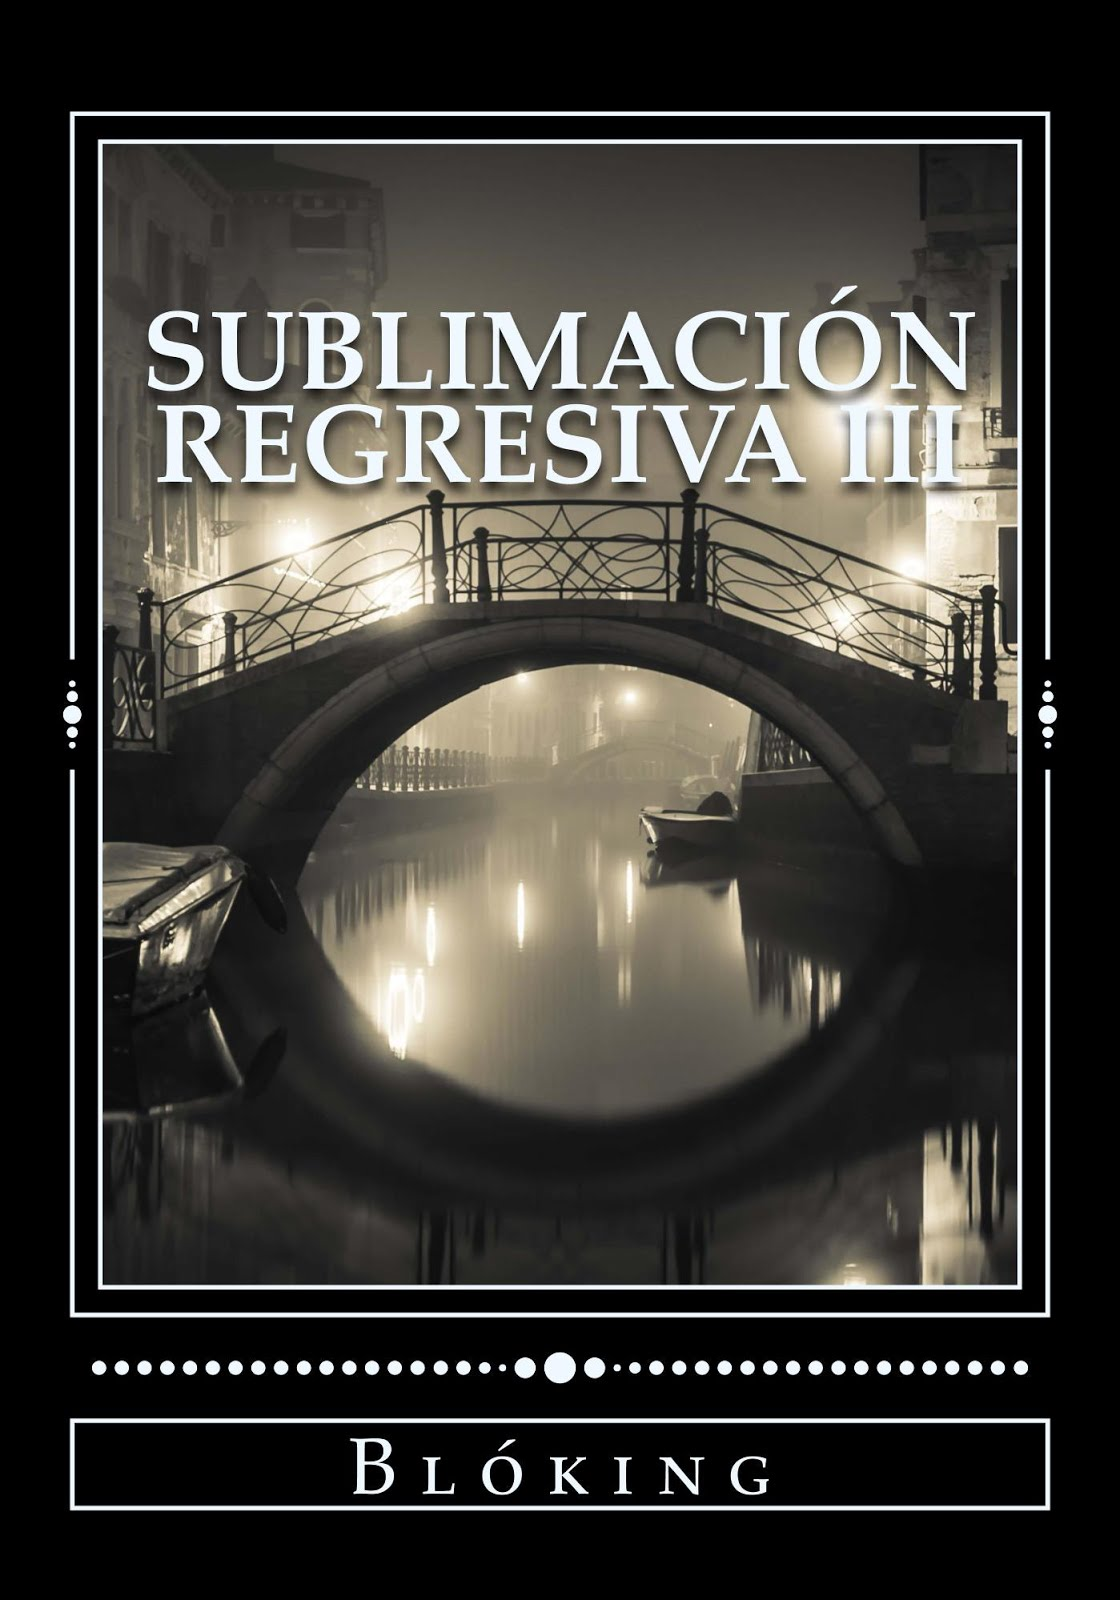 #Obra 37 - Sublimación regresiva III